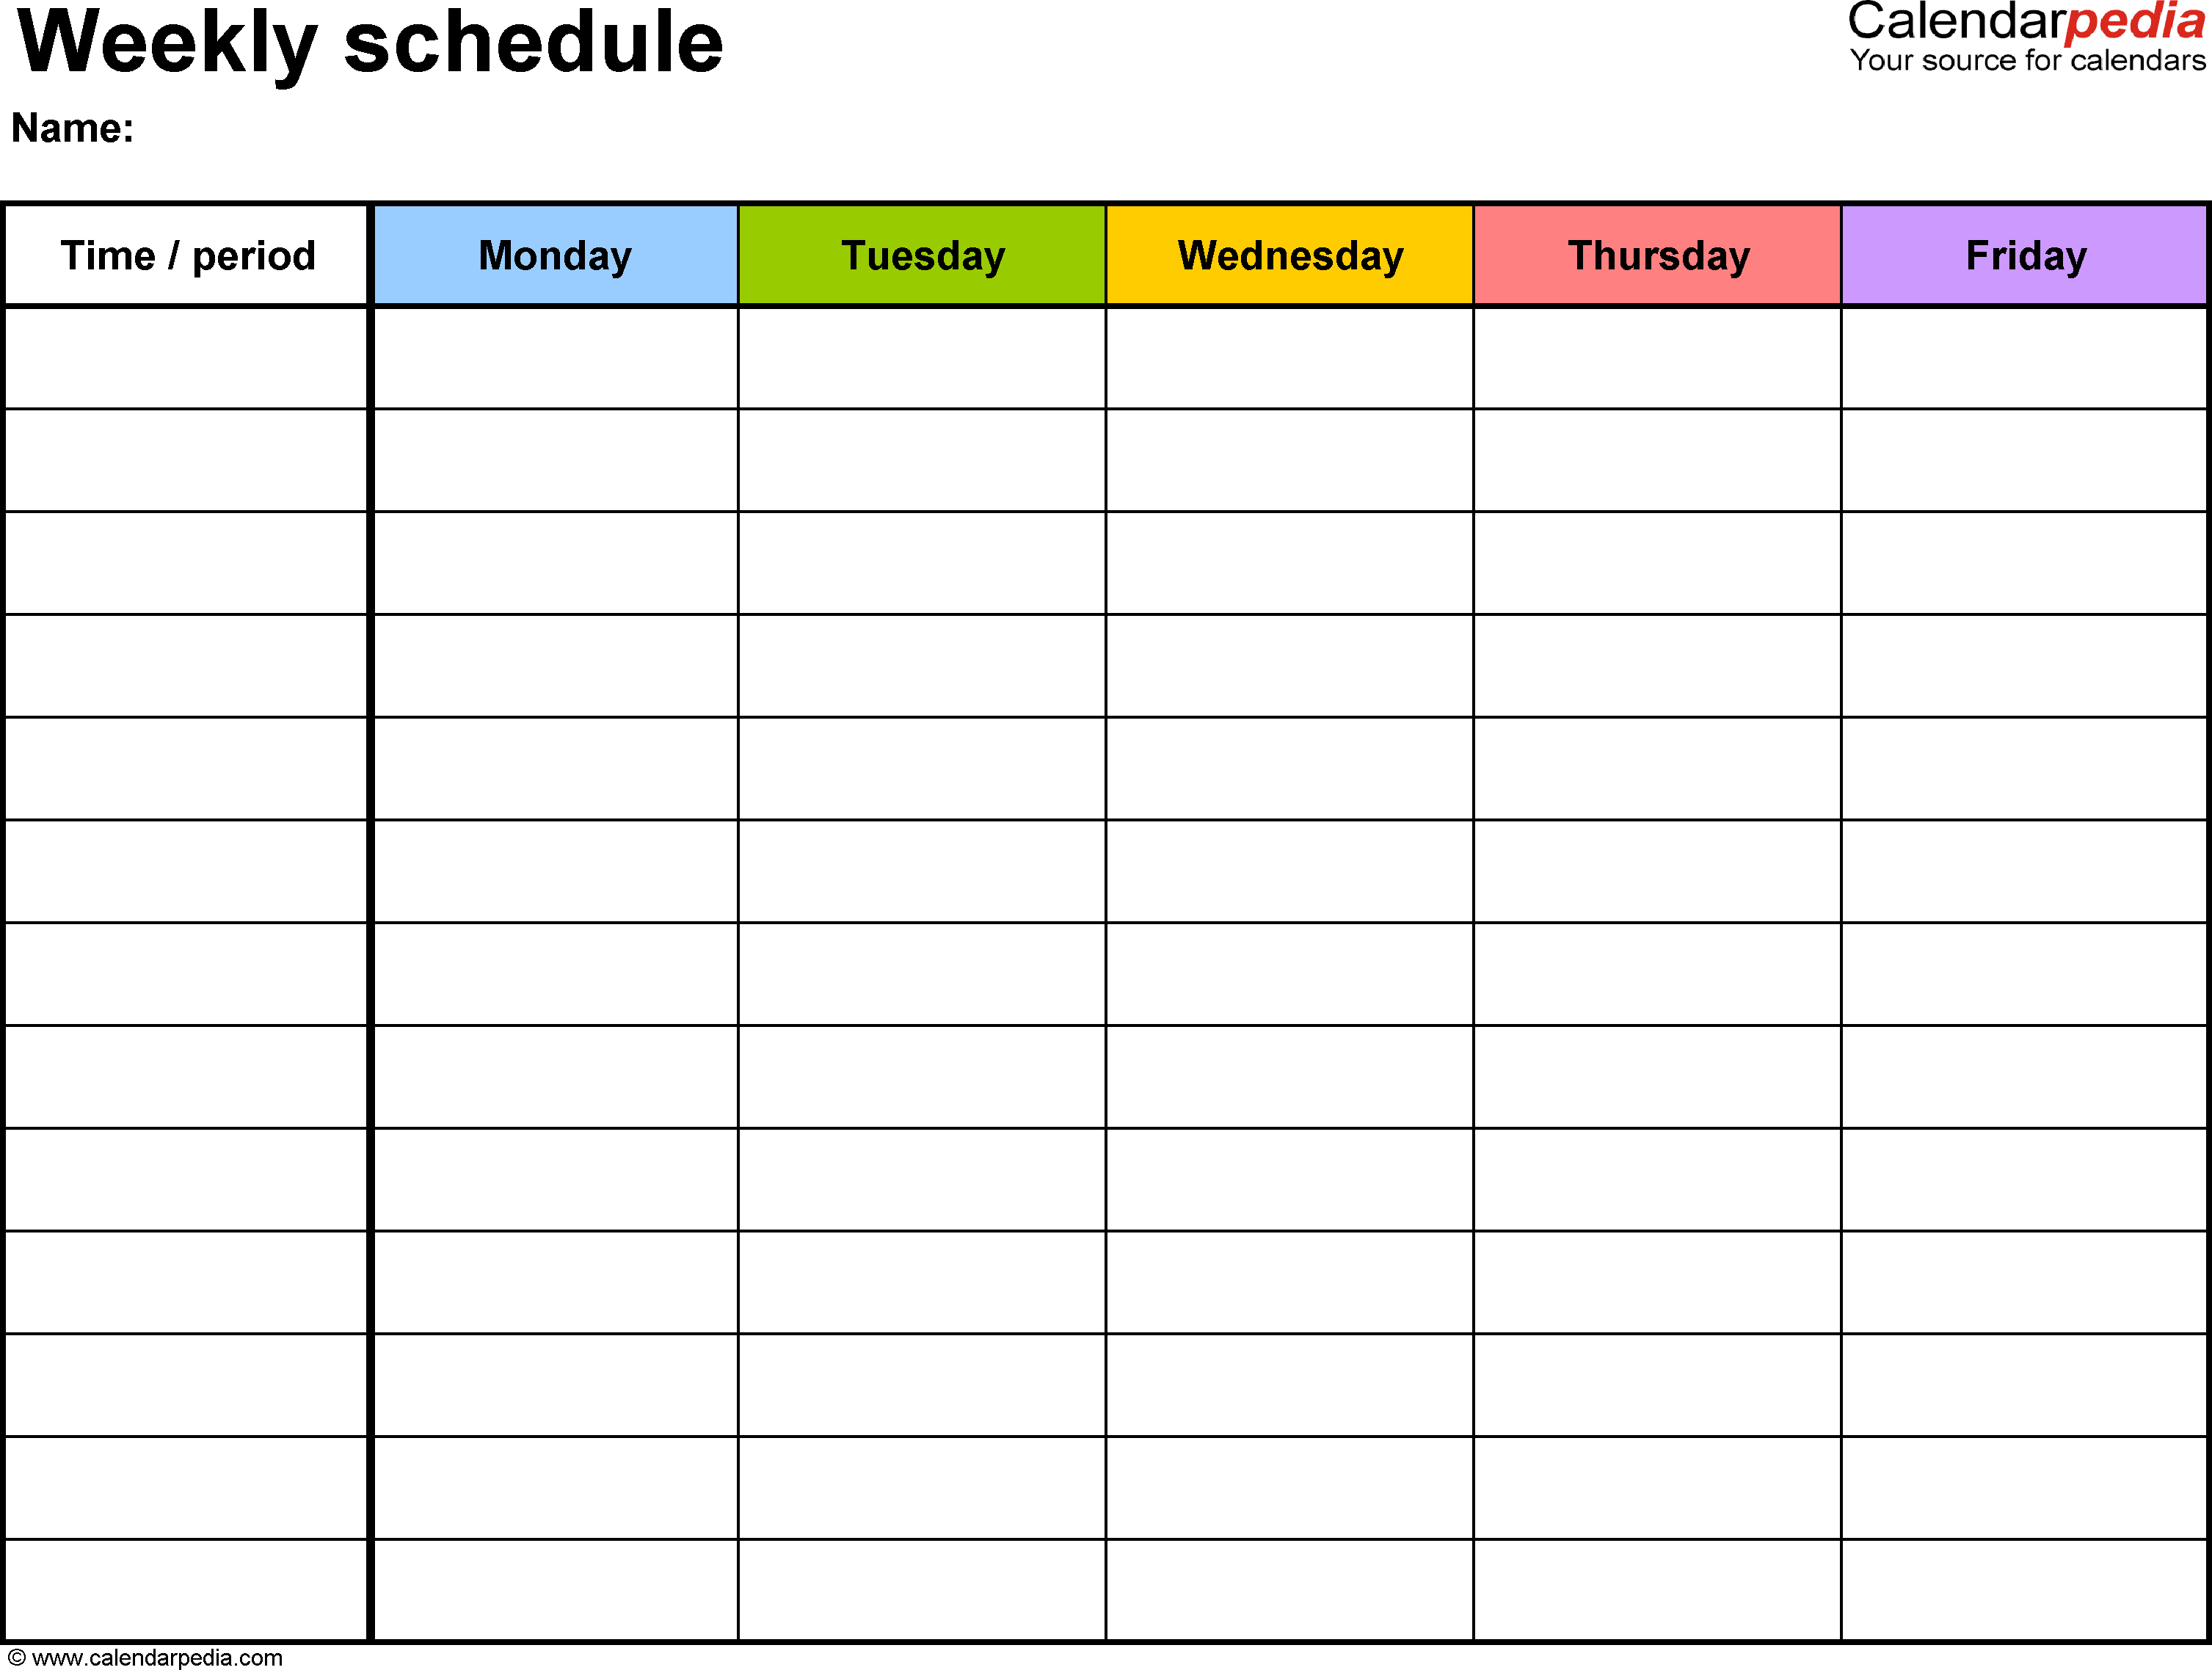 Free Weekly Schedule Templates For Word - 18 Templates for Blank Weekly Calendar Print Outs